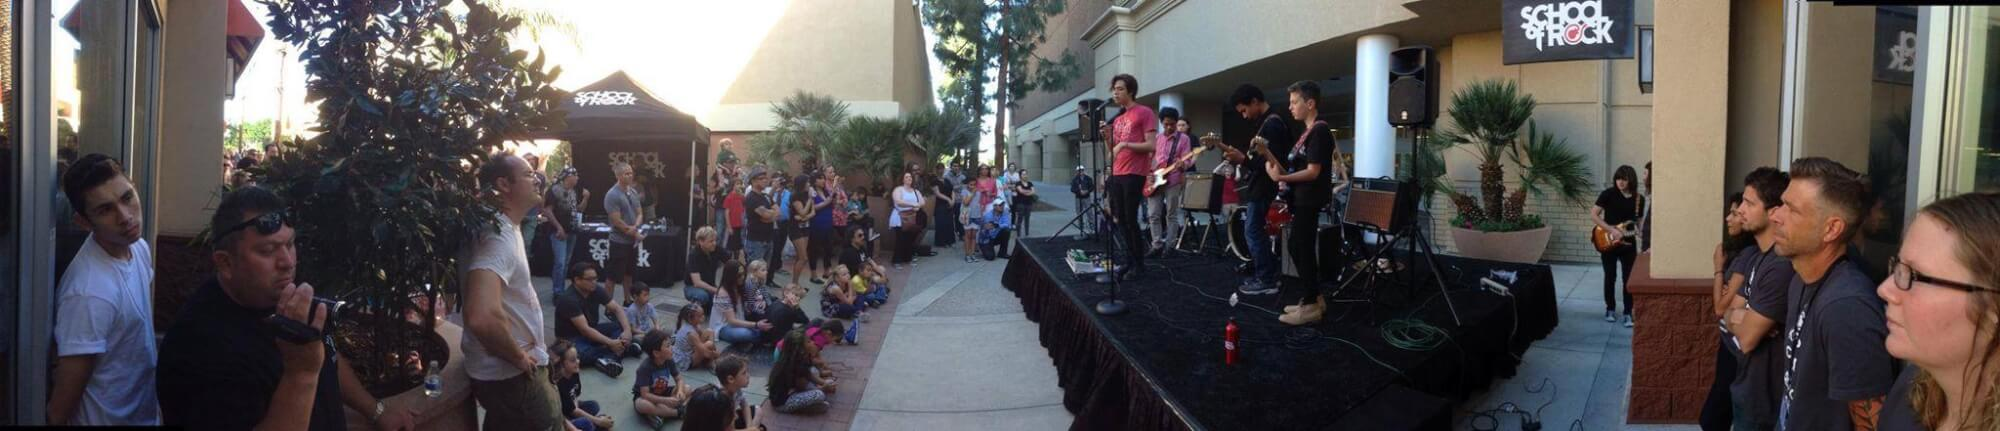 Grand Opening with School of Rock Burbank kids